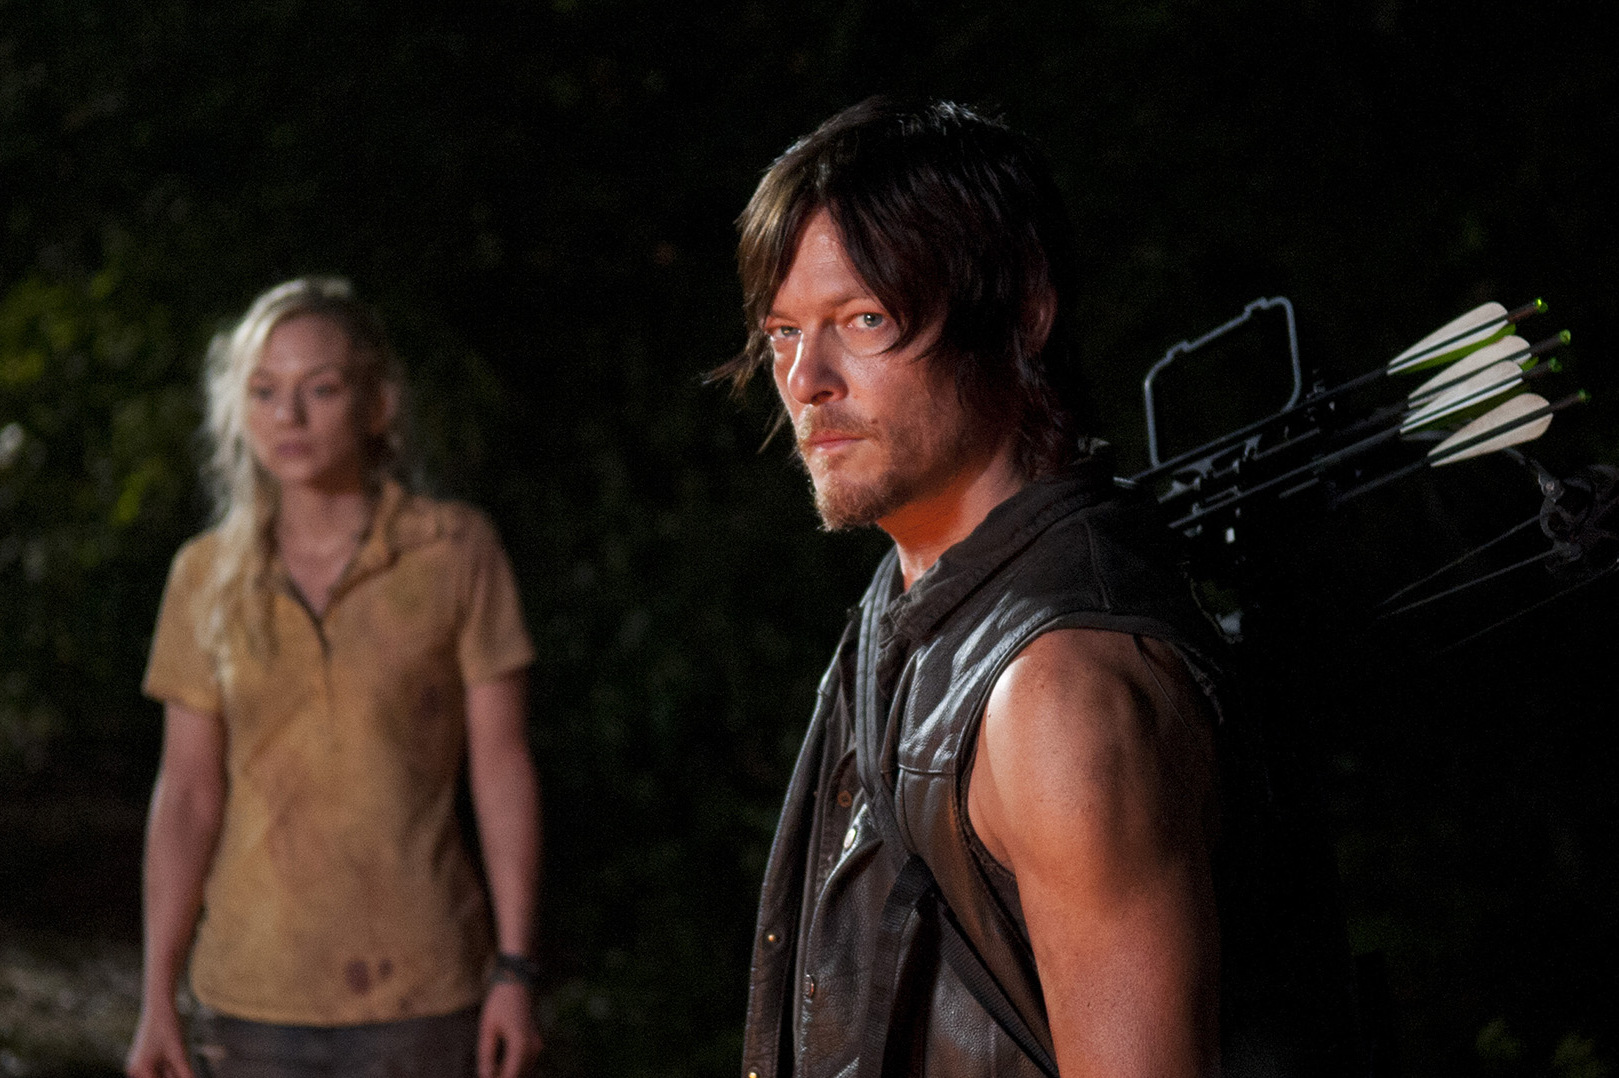 http://img3.wikia.nocookie.net/__cb20140224034050/walkingdead/images/7/7a/TWD-Episode-412-Main-590.jpg